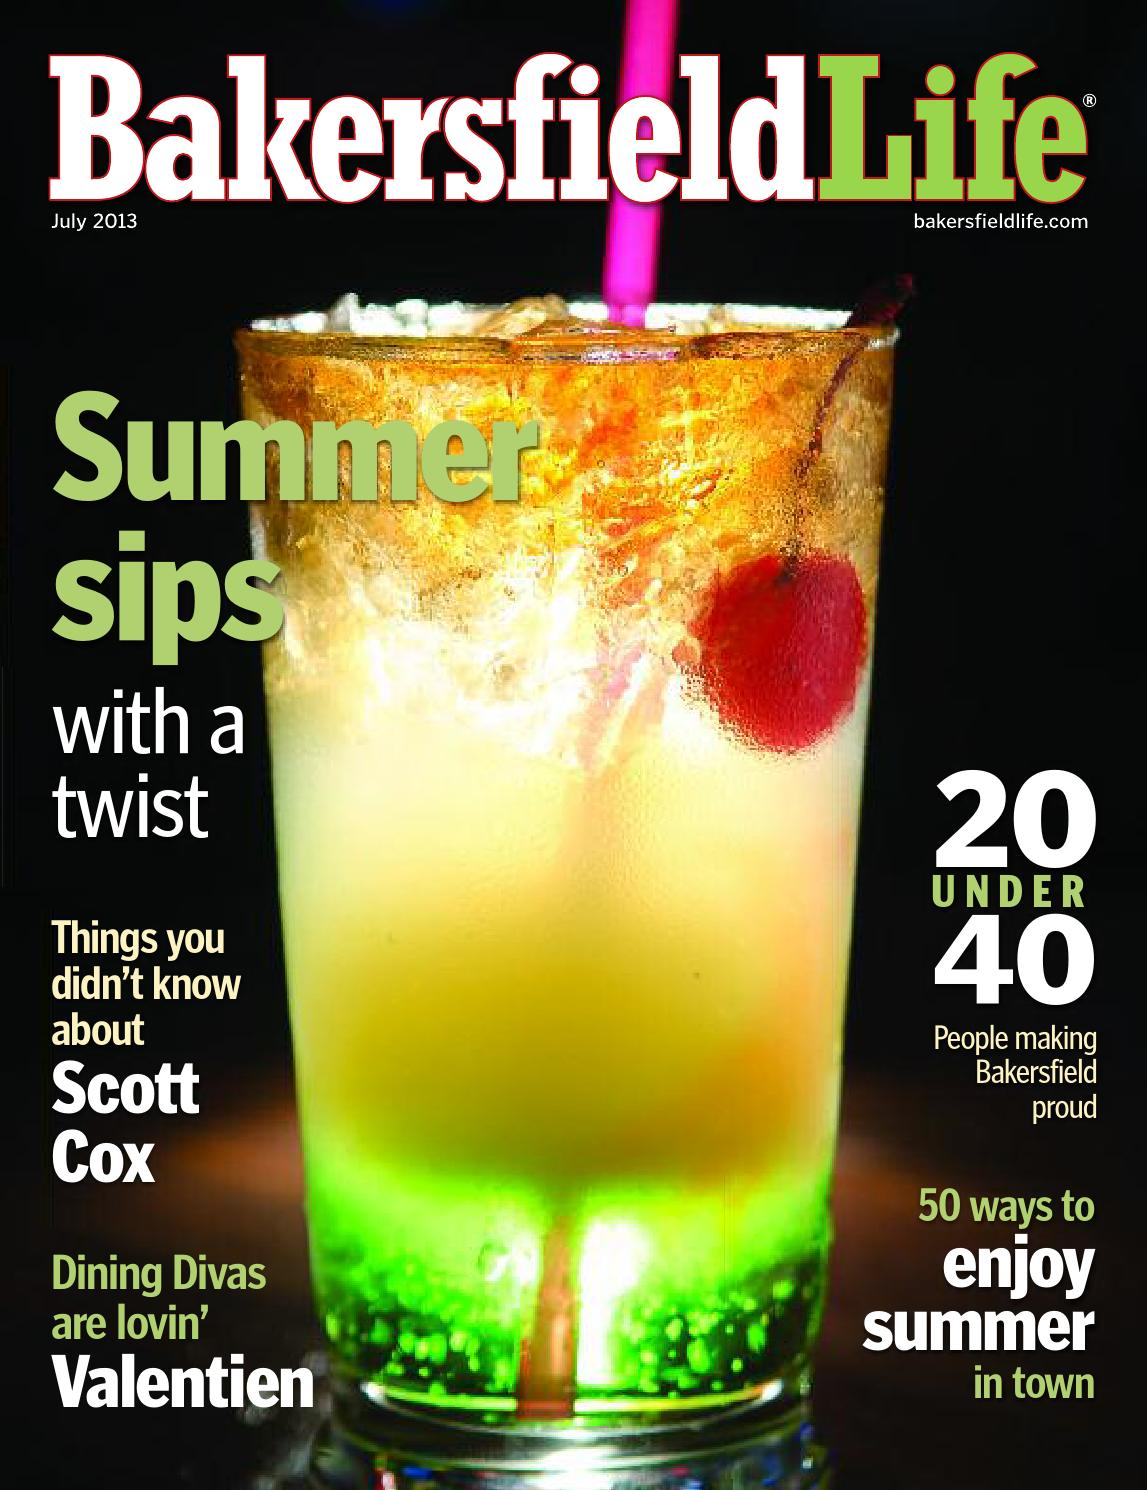 Bakersfield Life Magazine July 2013 By Tbc Media Specialty